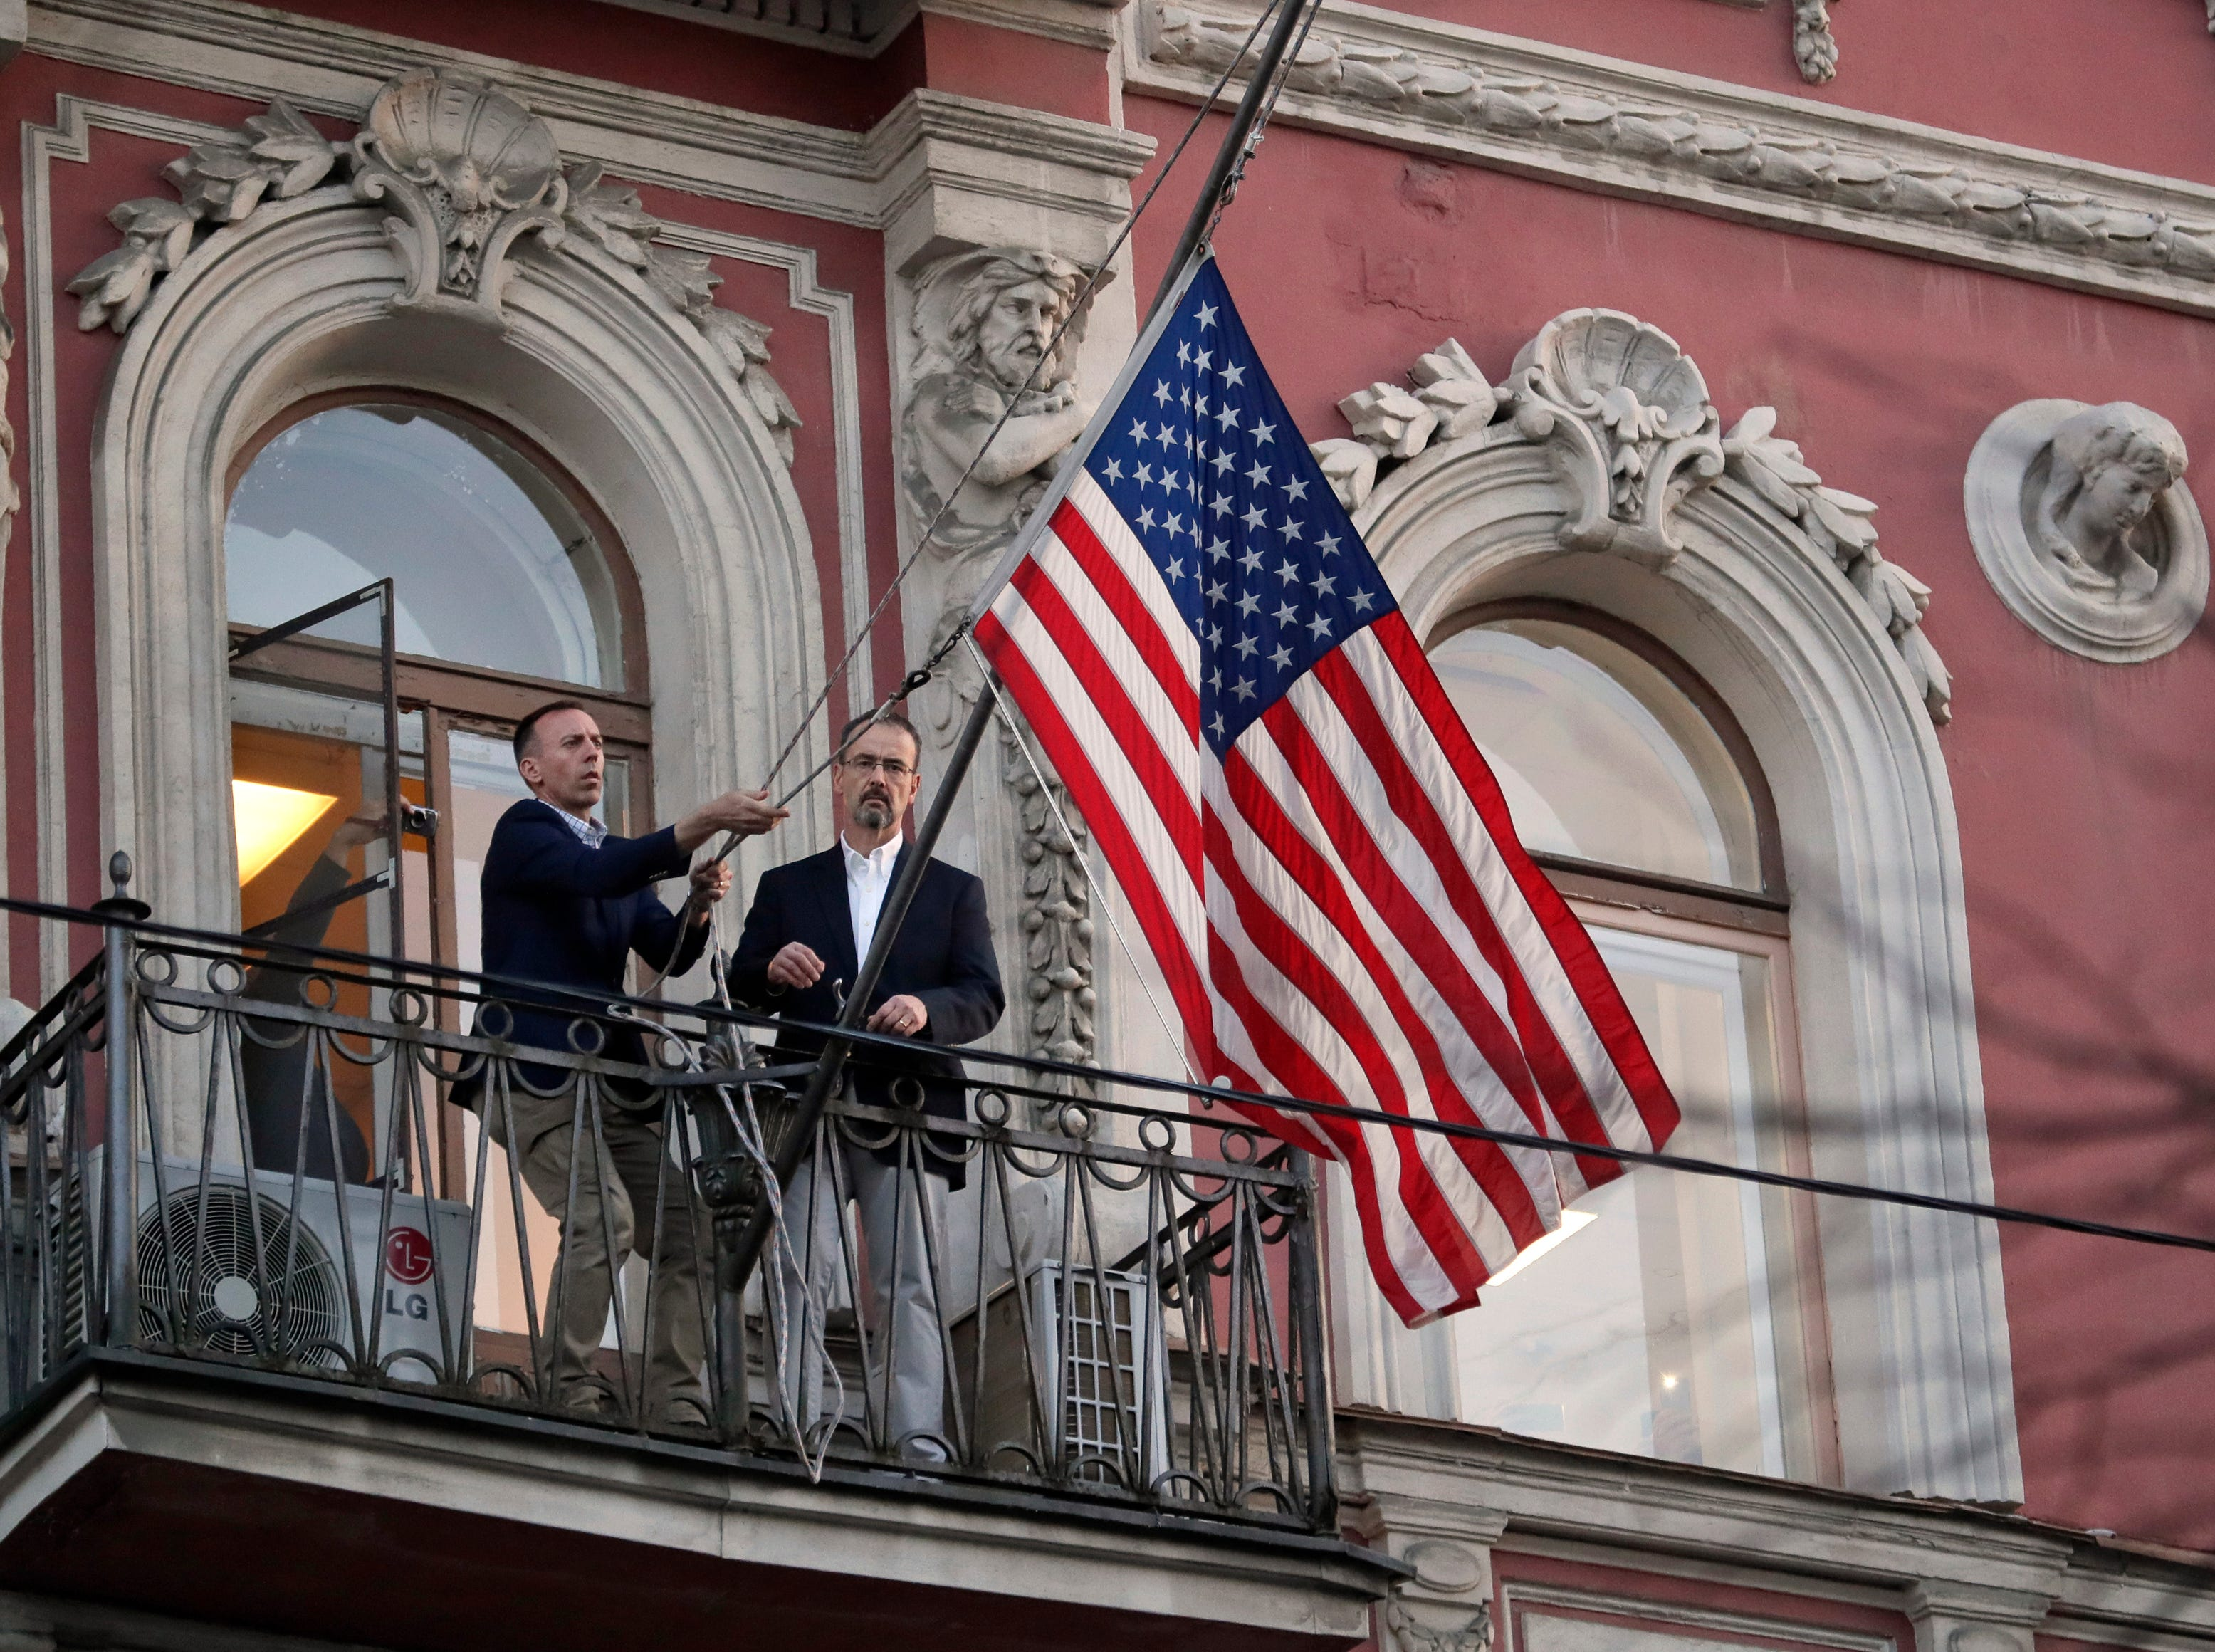 Employees at the U.S. consulate in St. Petersburg, Russia, remove the U.S flag on March 31, 2018, after Russia announced it was closing the consulate and expelling more than 150 diplomats, including 60 Americans. The move was in retaliation for the wave of Western expulsions of Russian diplomats over the poisoning of an ex-spy and his daughter in Britain.